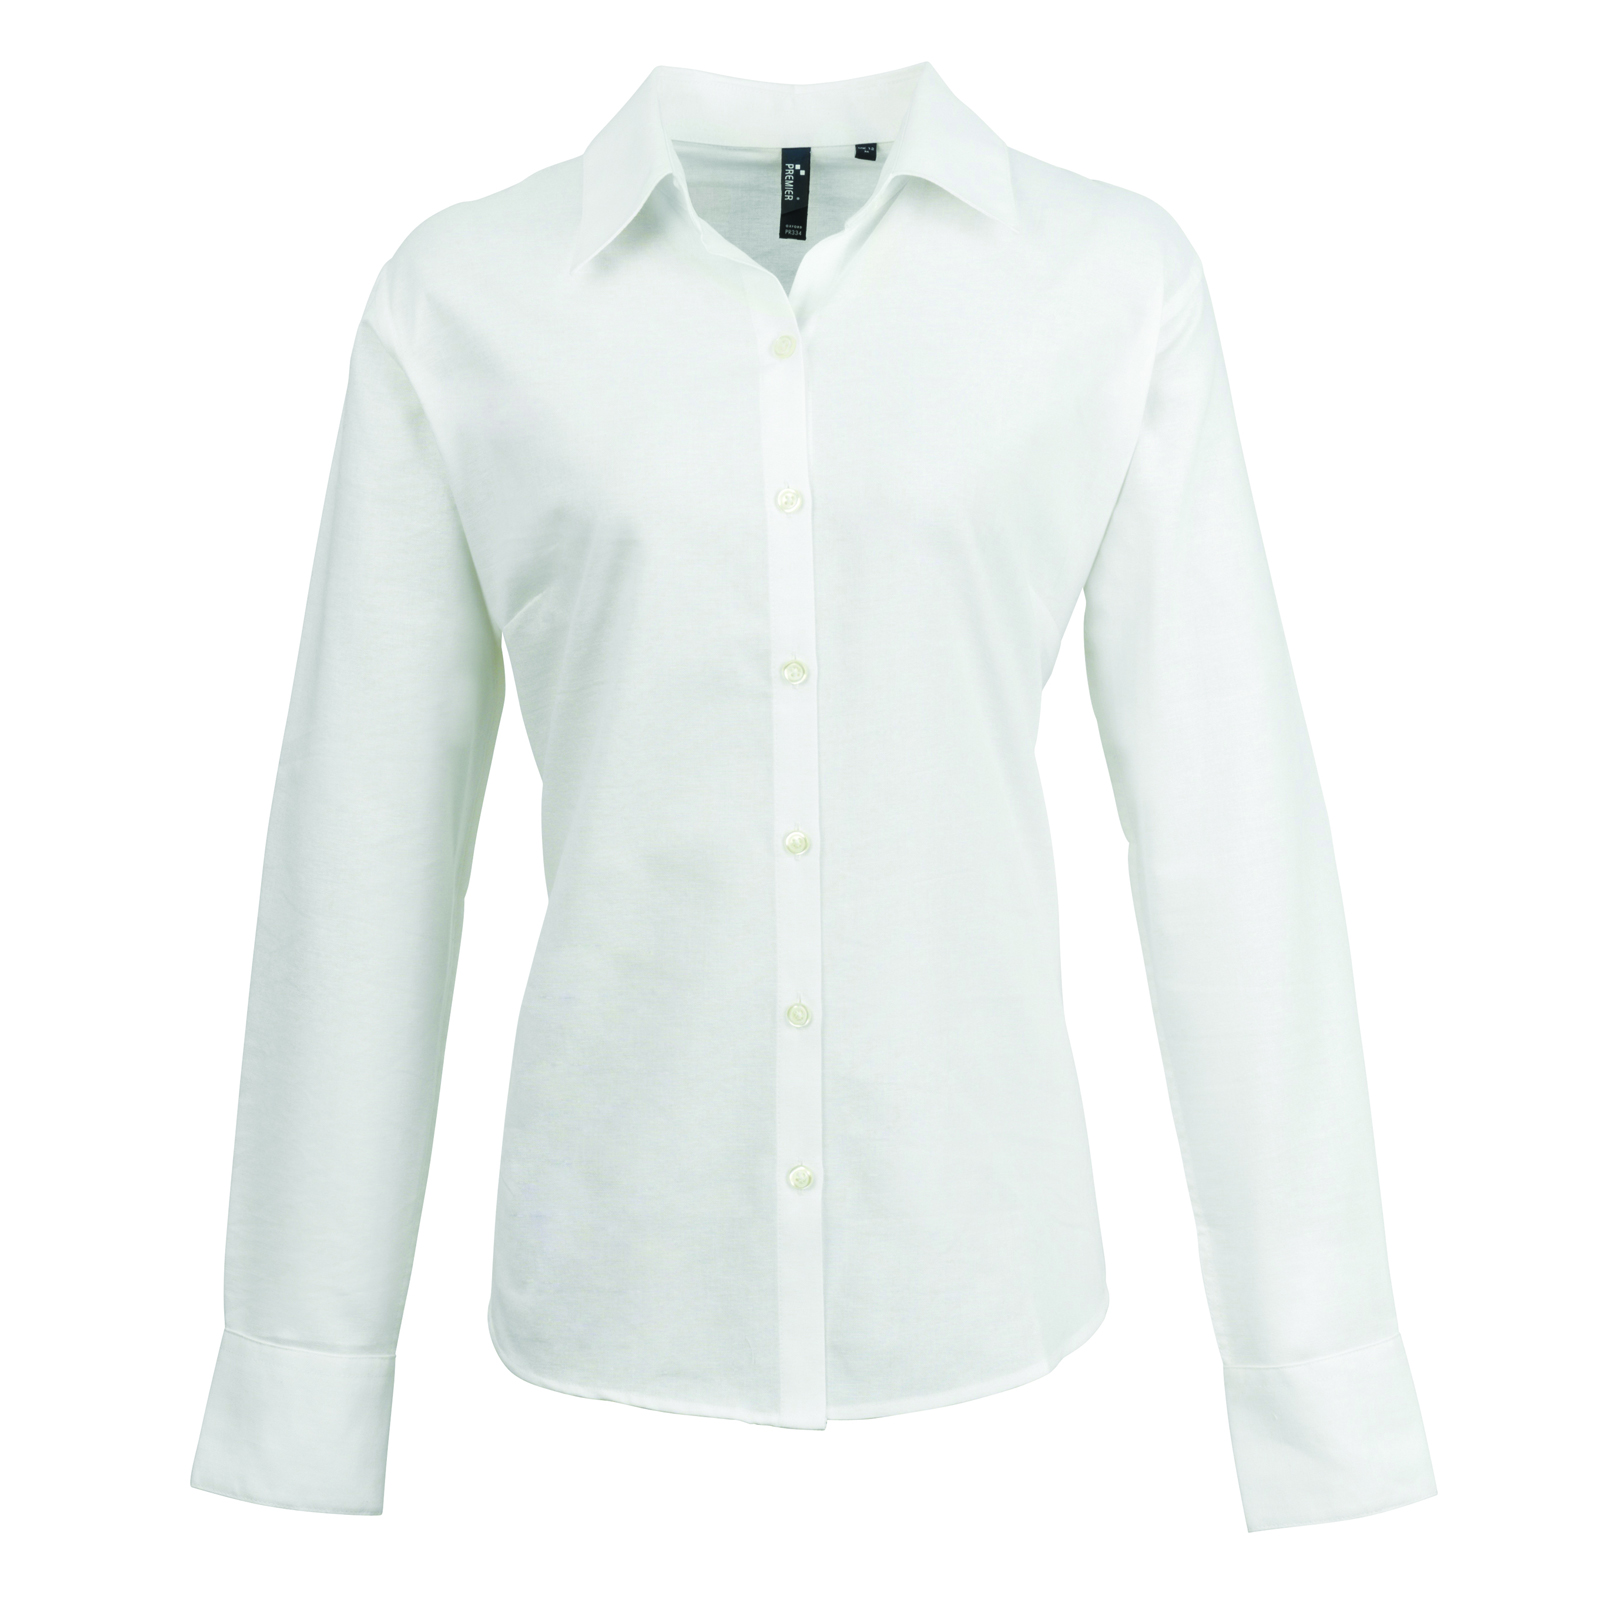 Shop men's long sleeve collared shirts from DICK'S Sporting Goods today. If you find a lower price on men's long sleeve collared shirts somewhere else, we'll match it with our Best Price Guarantee! Check out customer reviews on men's long sleeve collared shirts and save big on a variety of products. Plus, ScoreCard members earn points on every purchase.